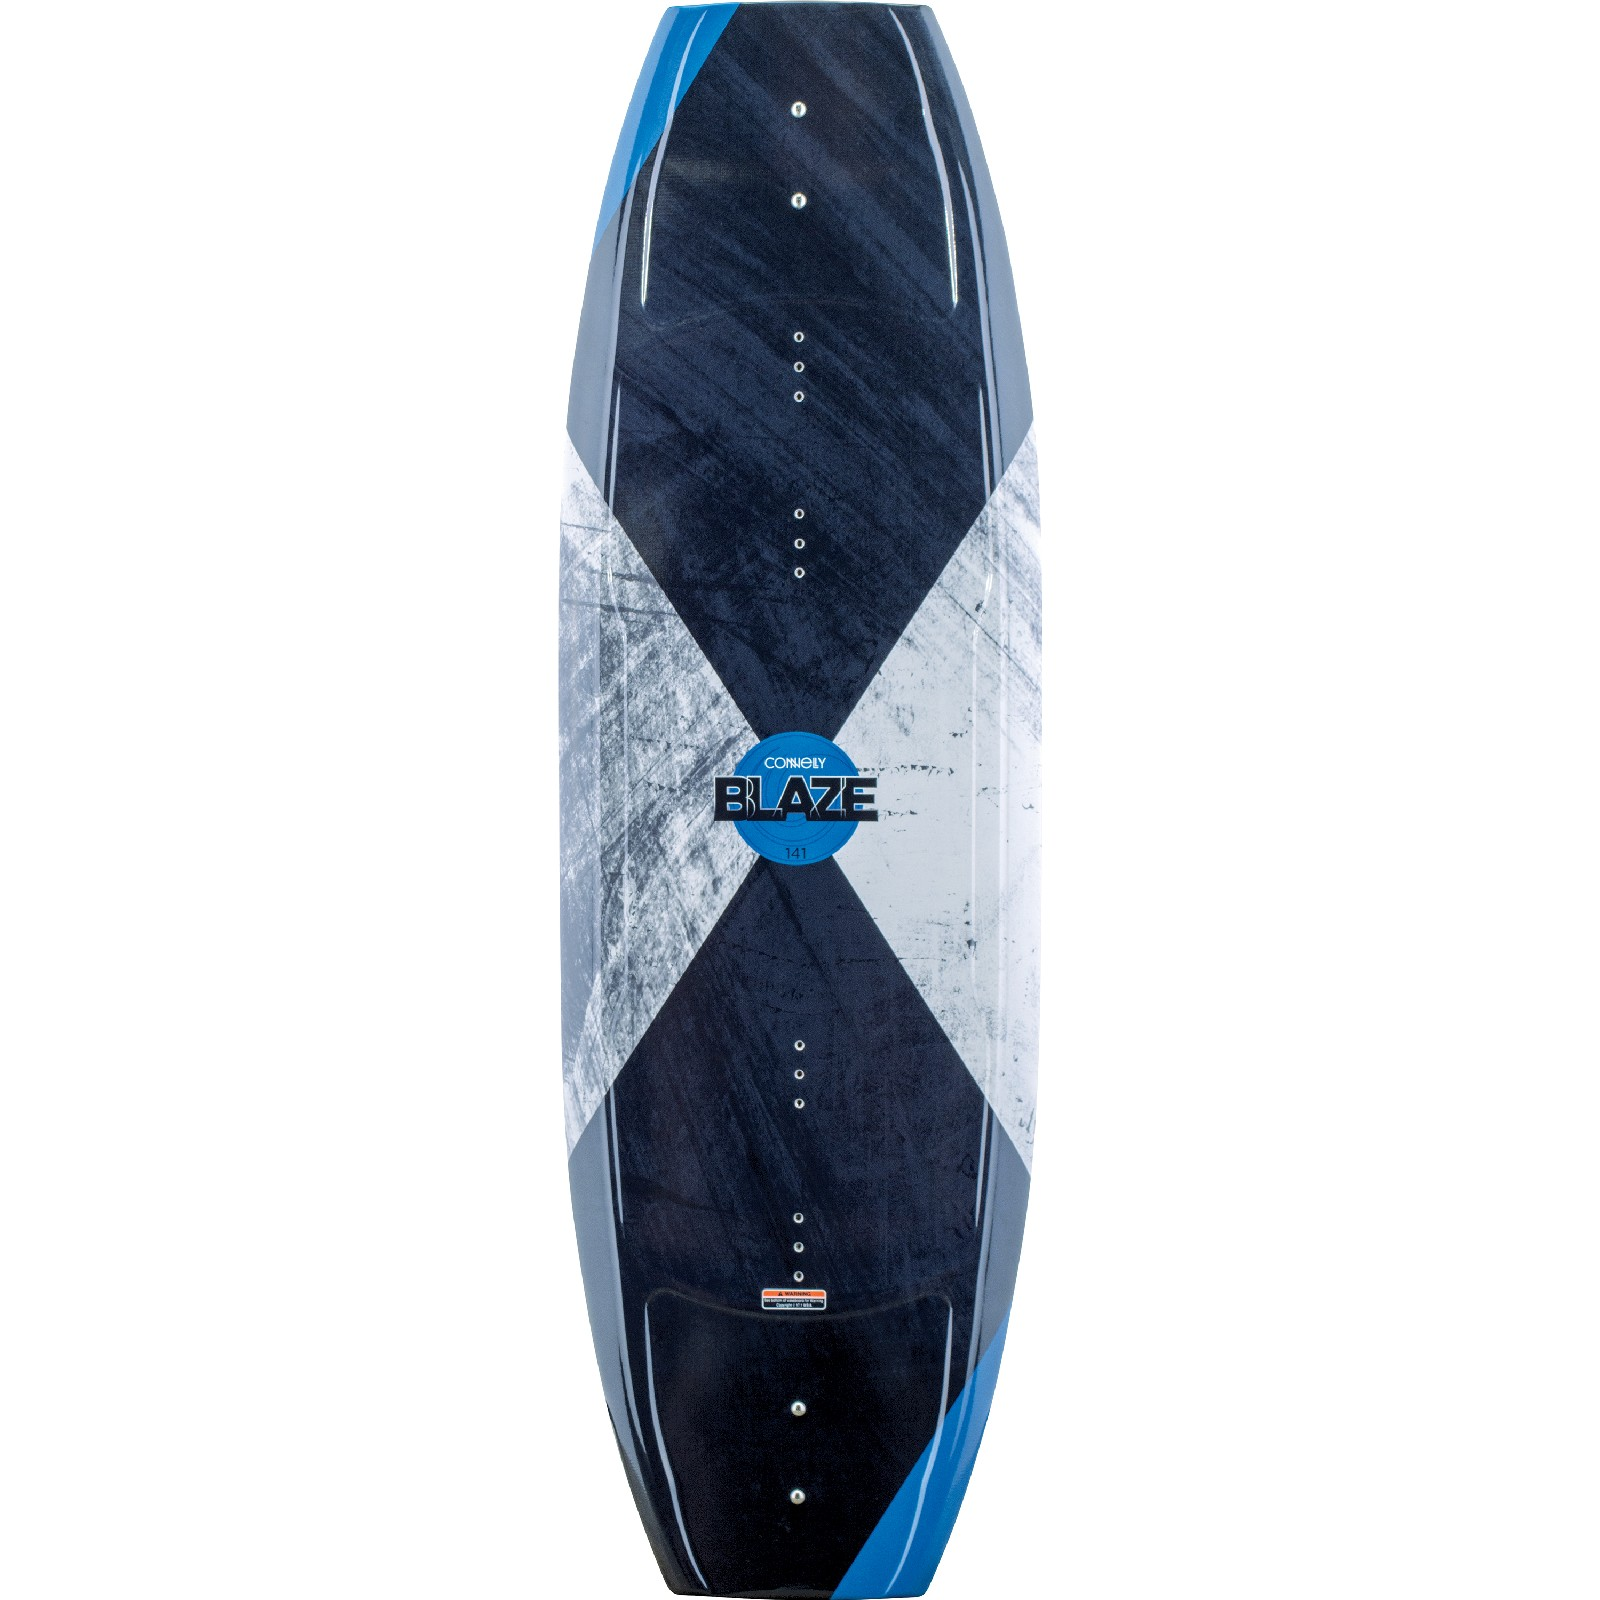 PLACA WAKEBOARD BLAZE 141 WAKEBOARD CONNELLY 2019